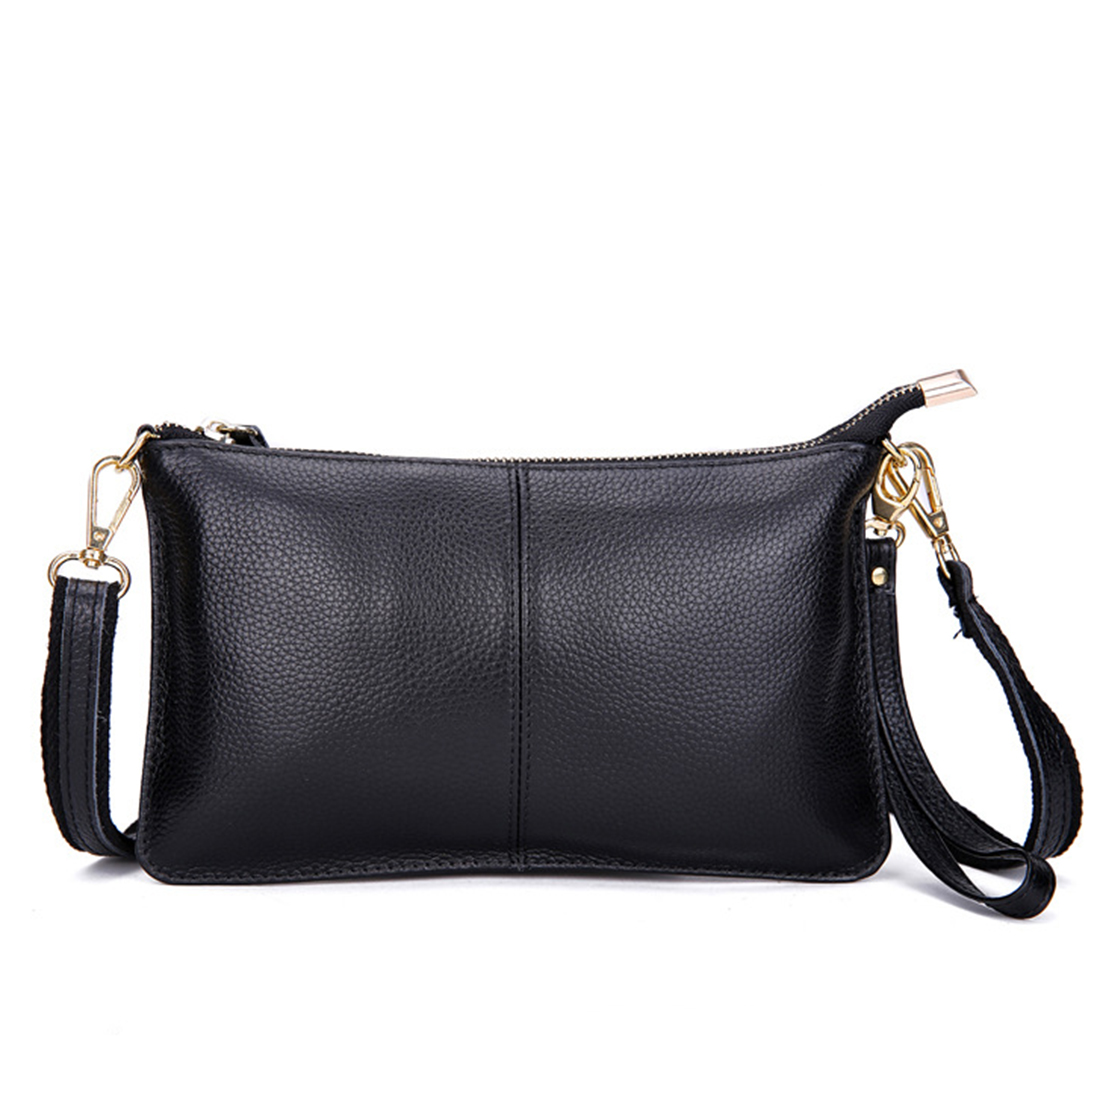 New arrival Women Clutch Bags first layer of Genuine leather small Shoulder Bag women Causal Crossbody Bags Handbags Bolsas<br>